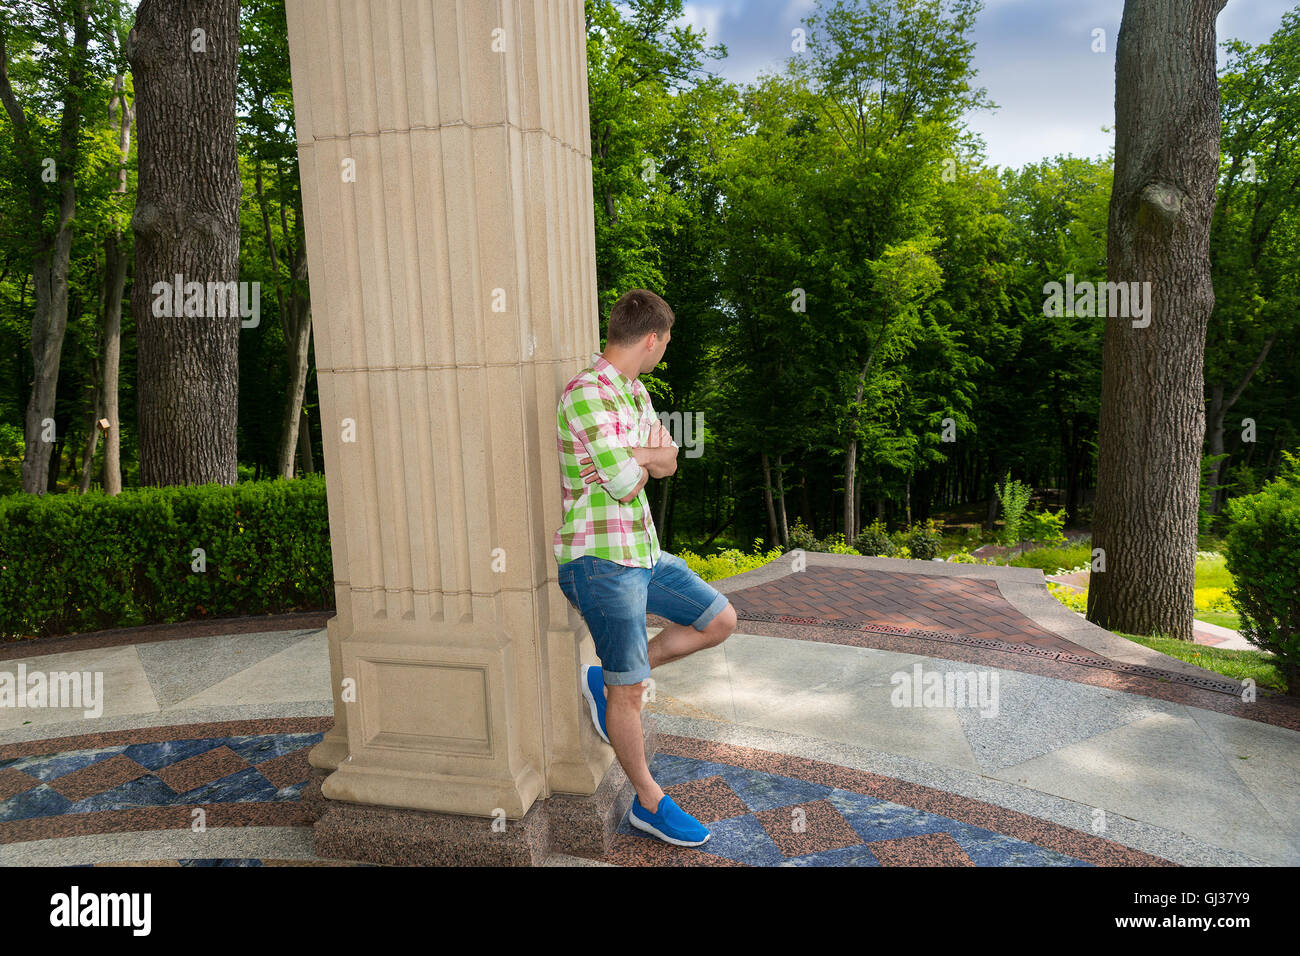 Side view on contemplative young male standing near stone wall outside facing trees in park or yard - Stock Image